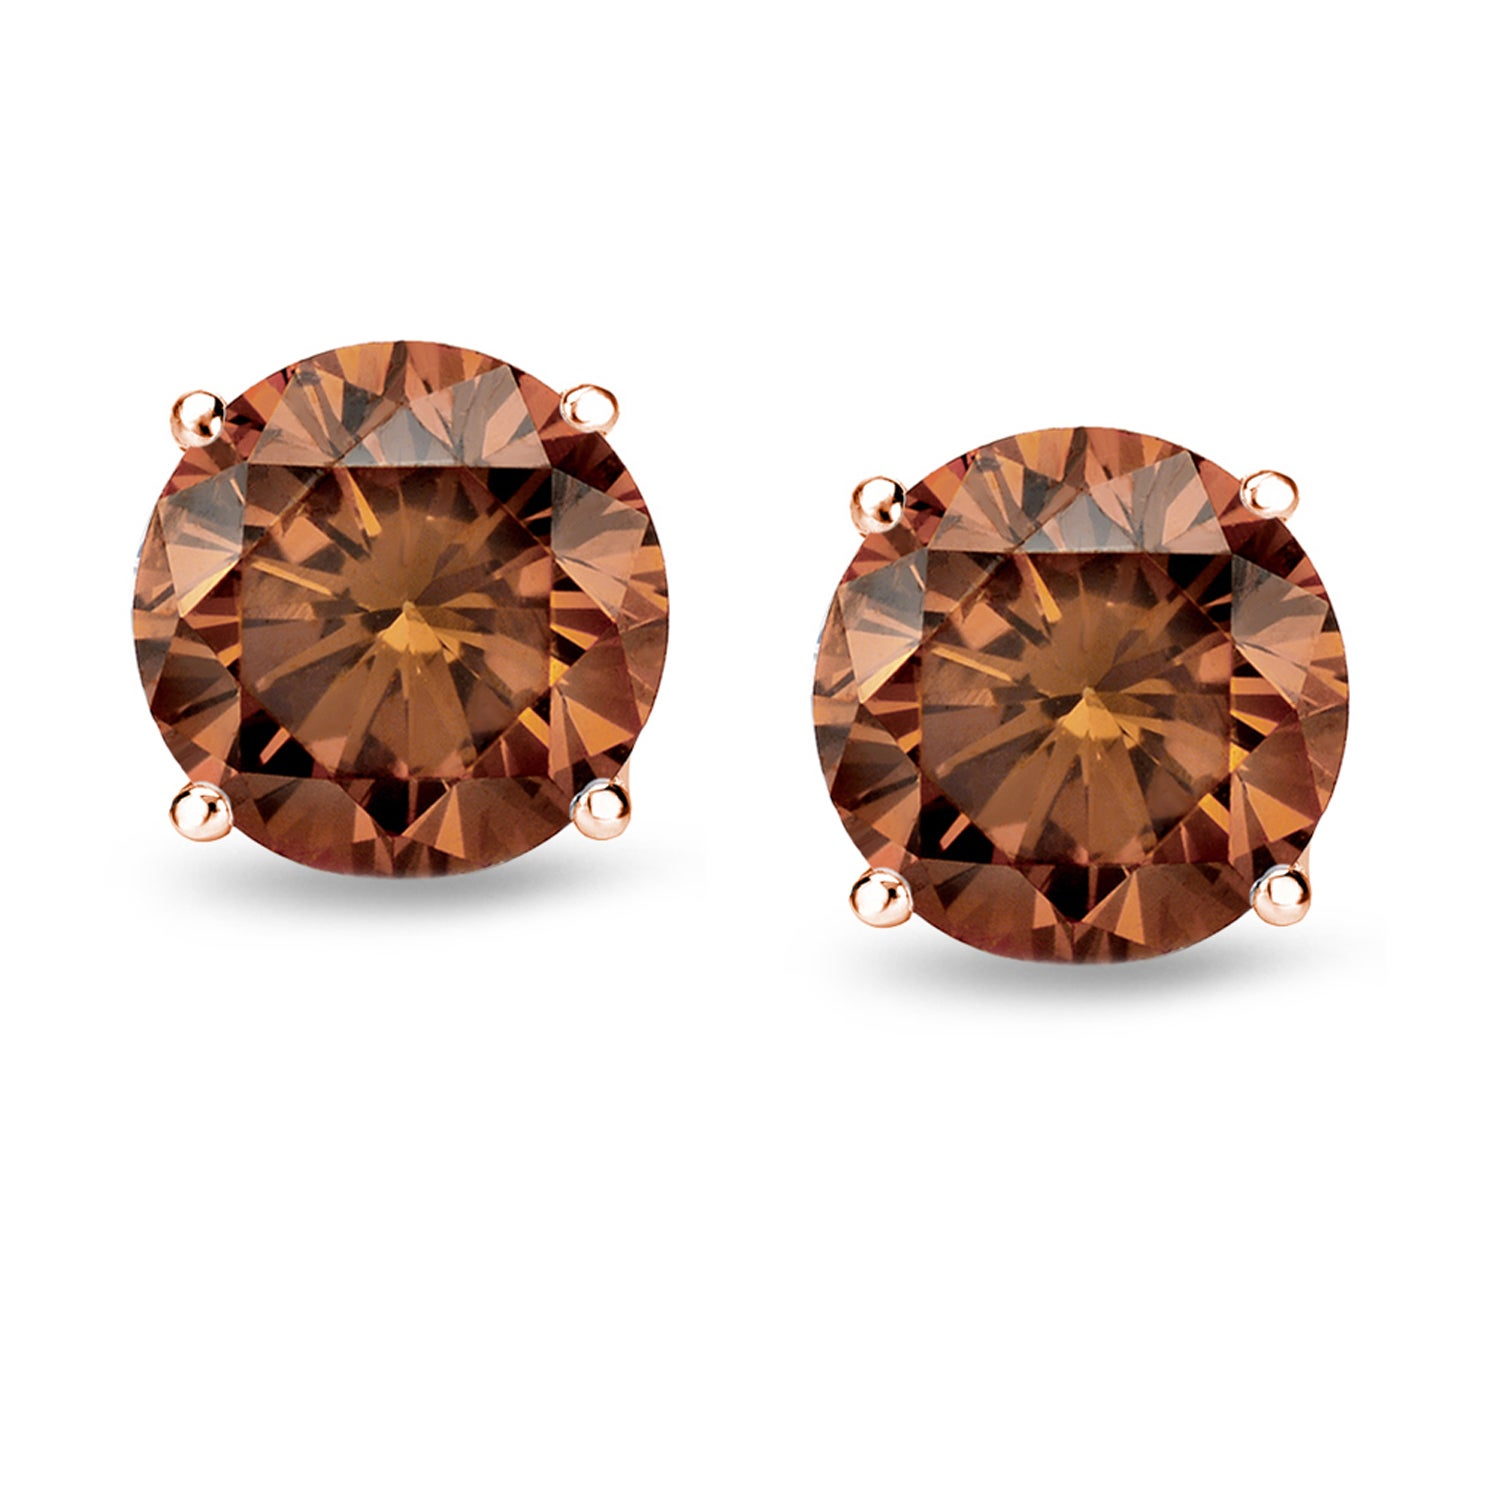 designer front solid brown single prong collections clarity web wendy white gold earrings fine diamond setting jewelry products nichol stud yellow